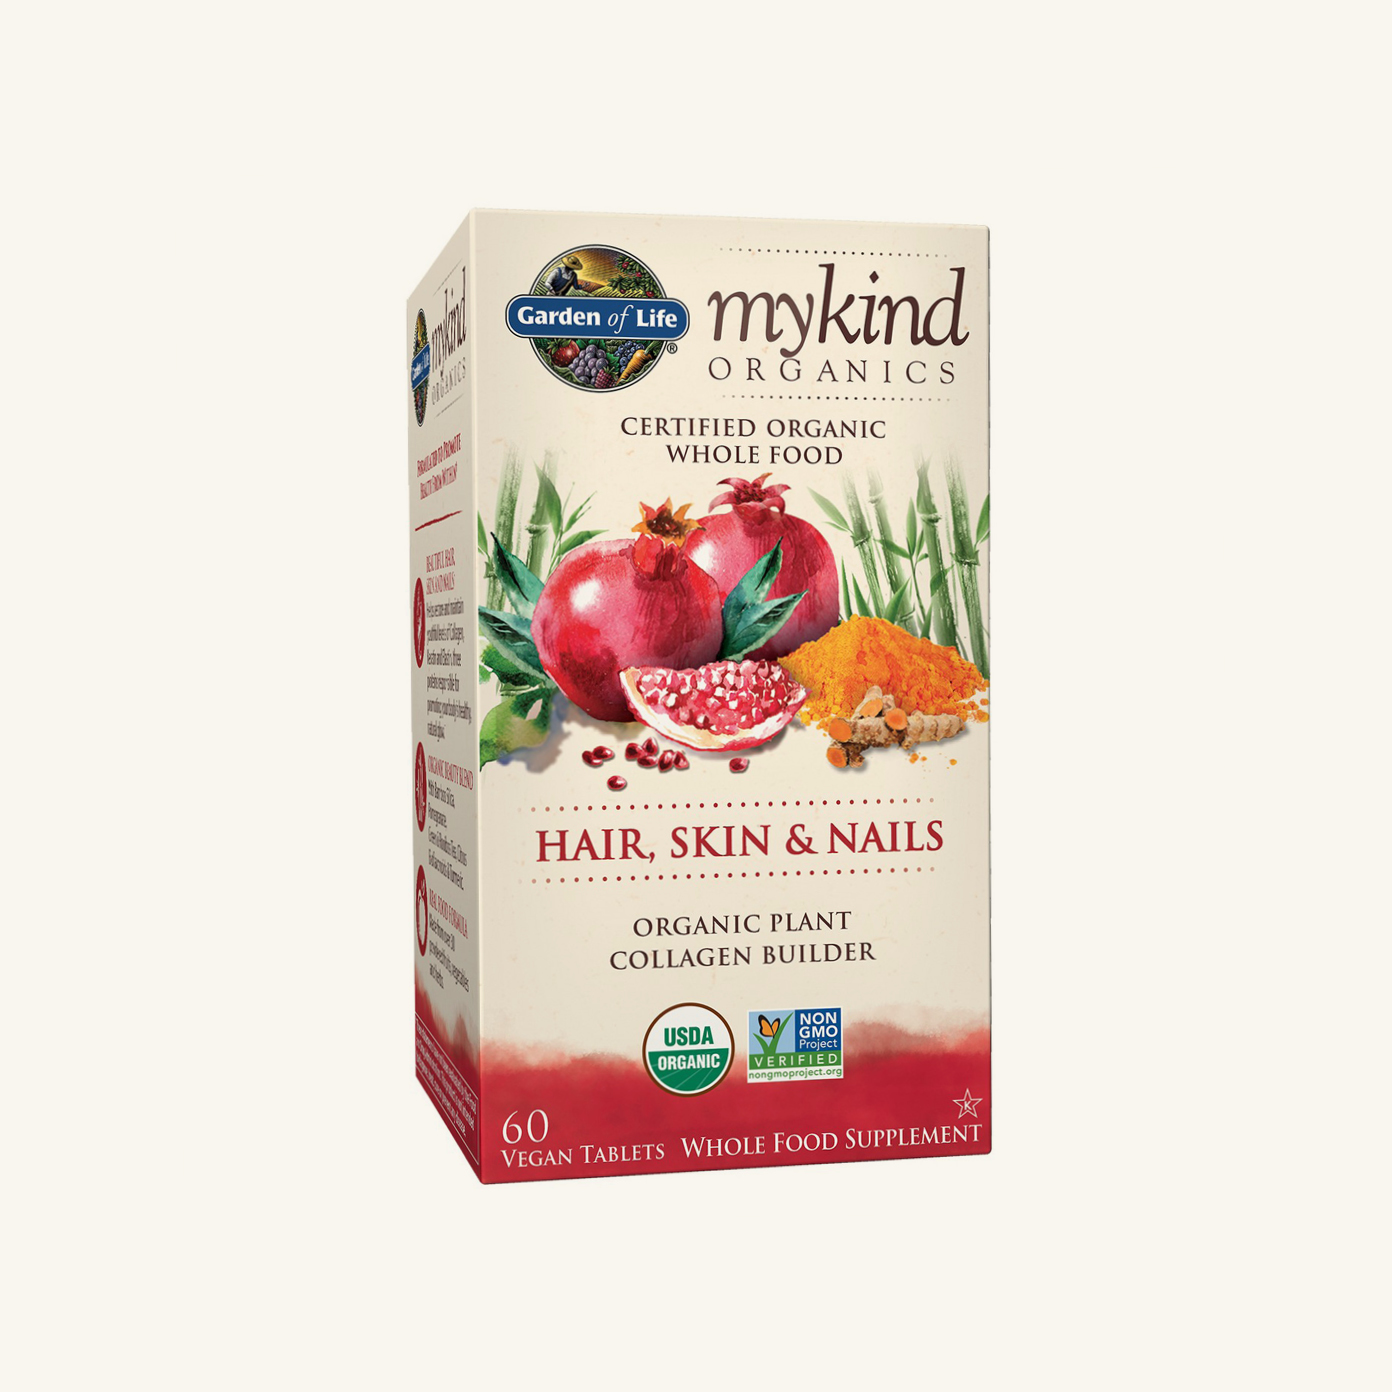 mykind Organics Plant Collagen Builder